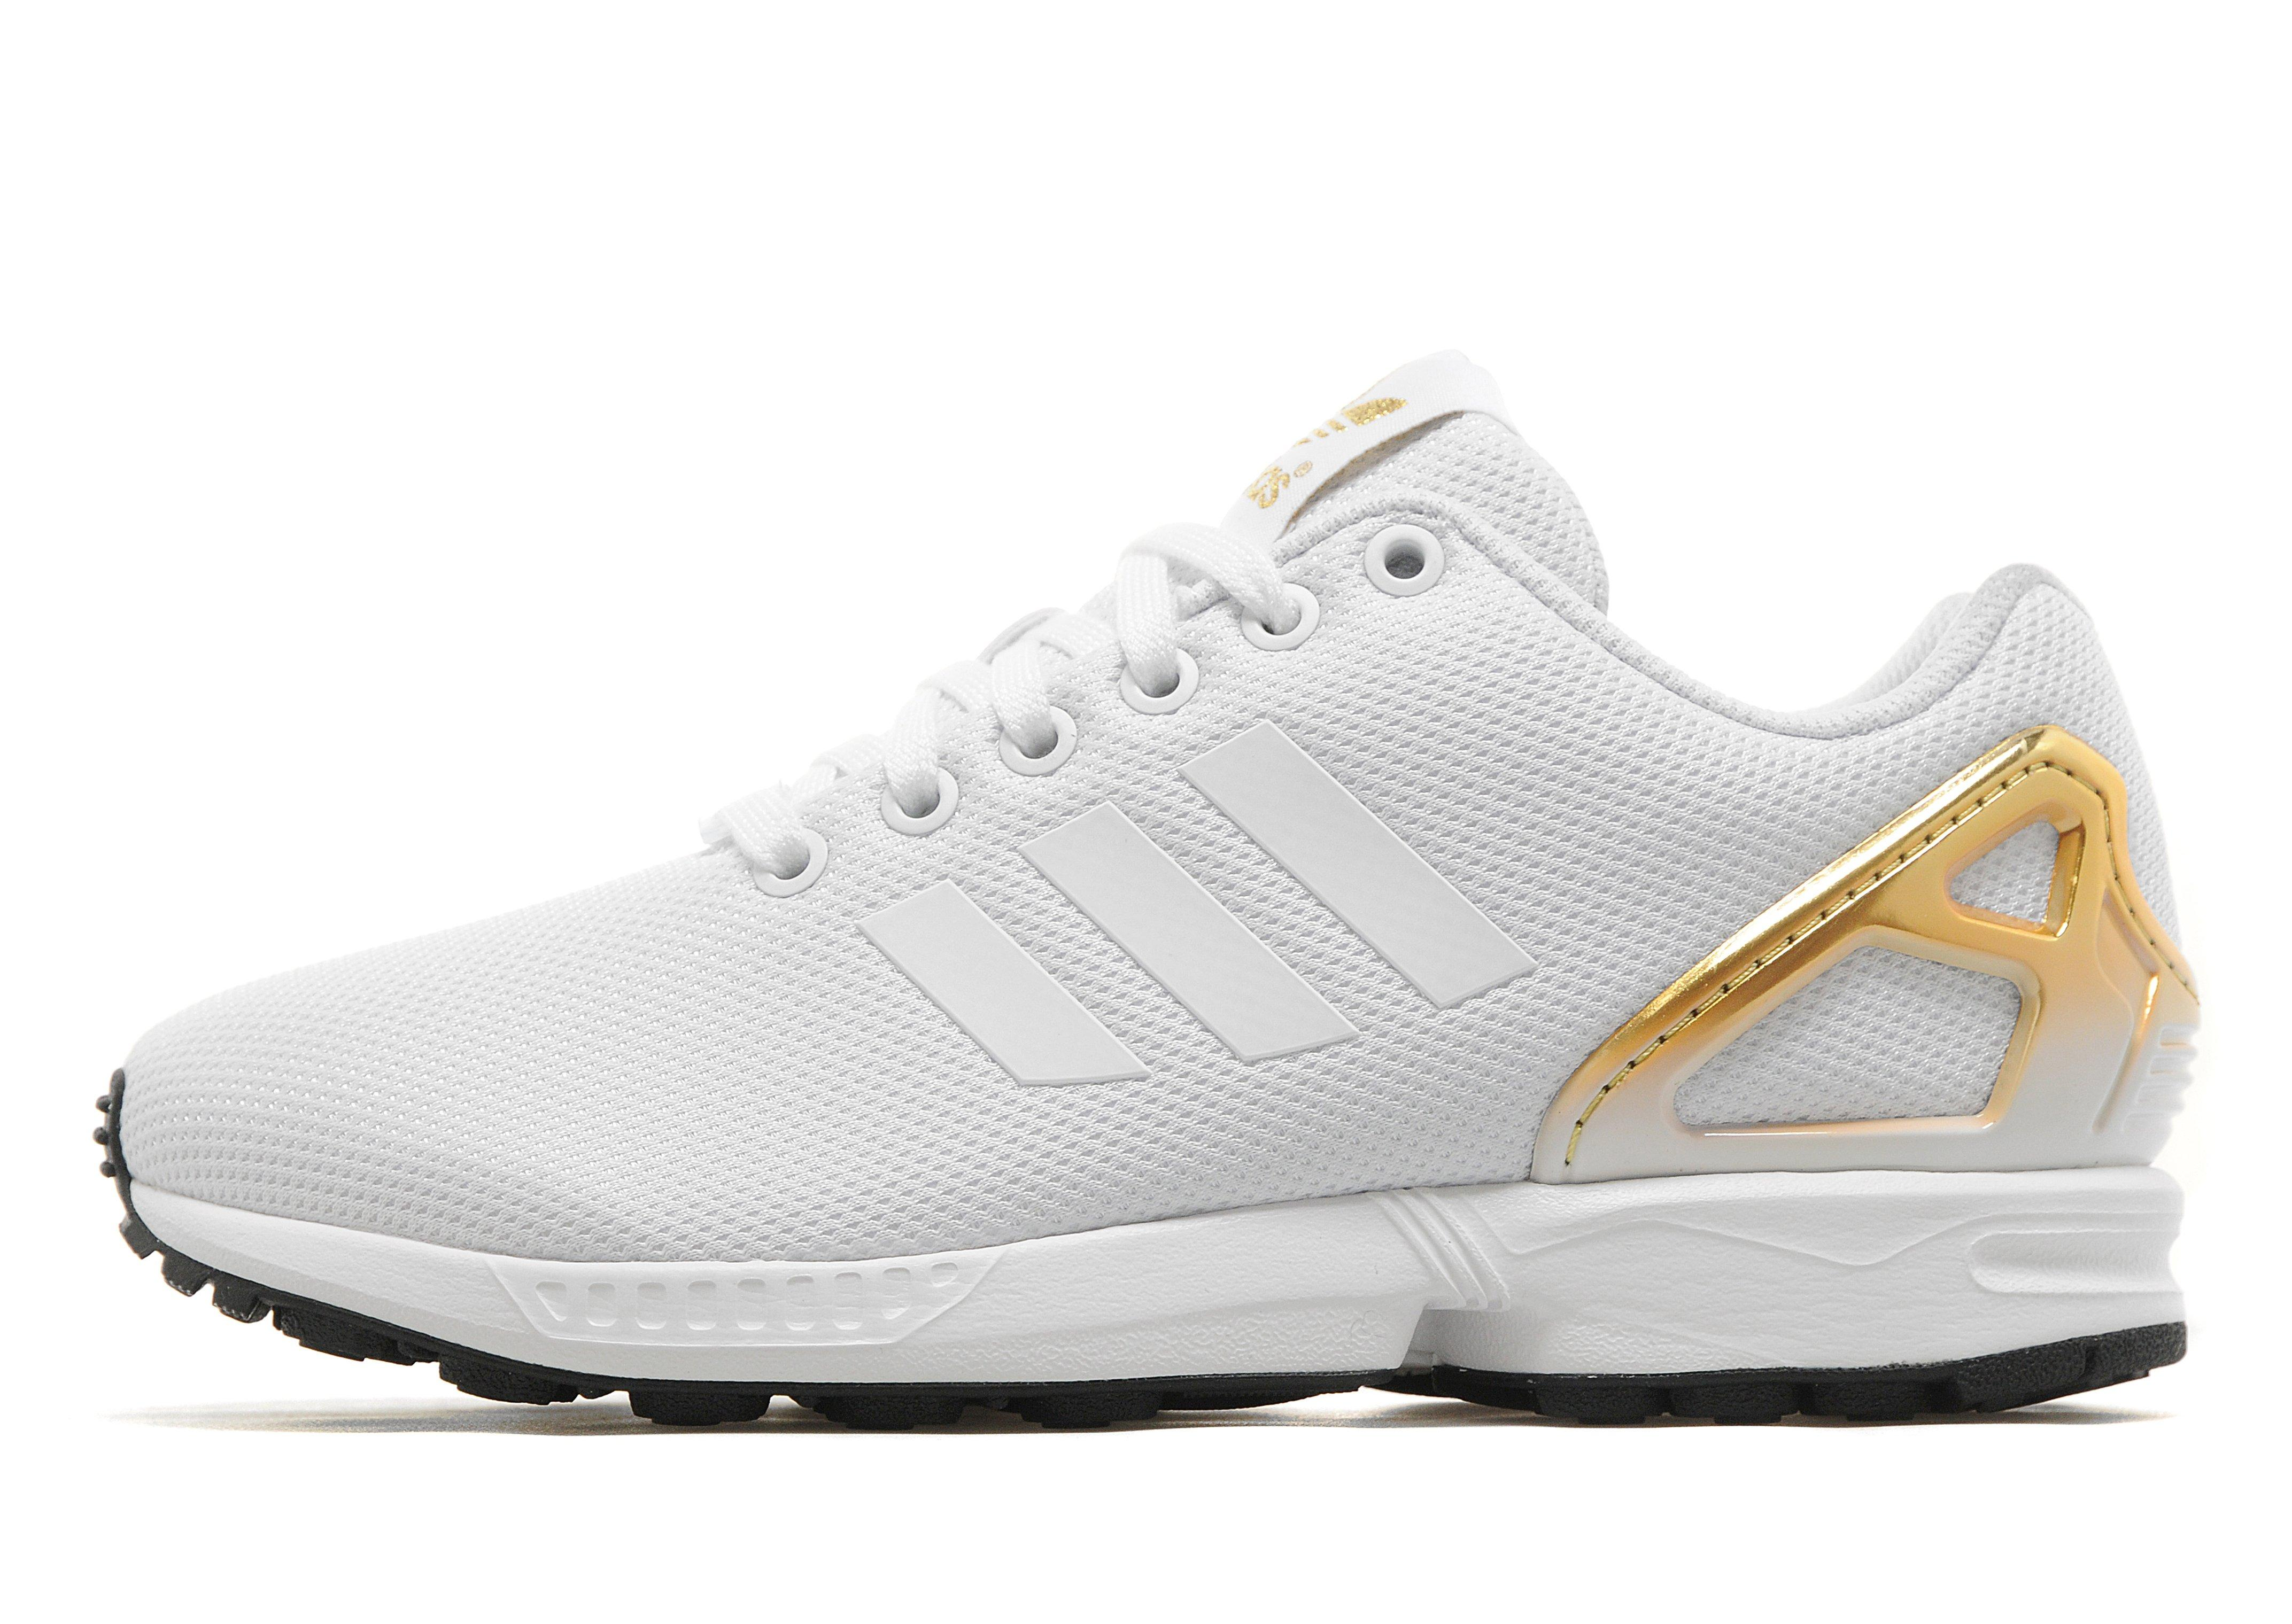 cee454a7cc34 ... usa adidas zx flux black and gold jd be272 50066